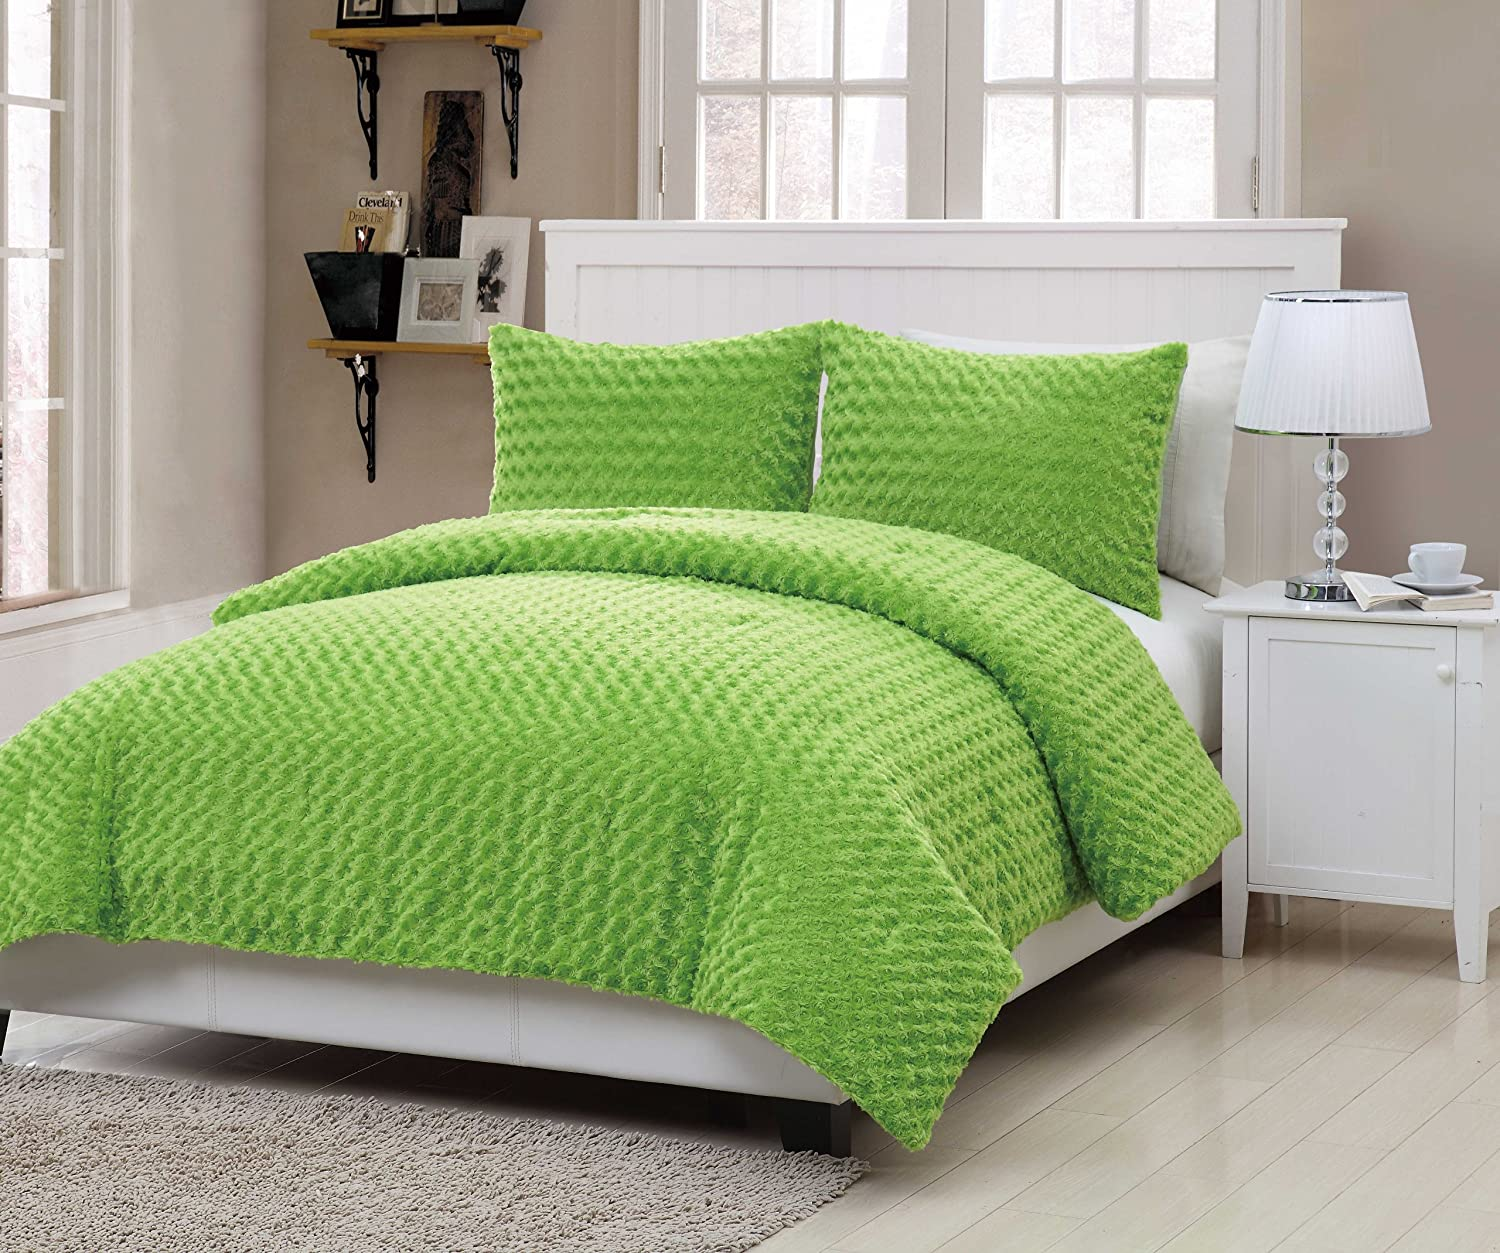 lime green bed sheets QR530knU